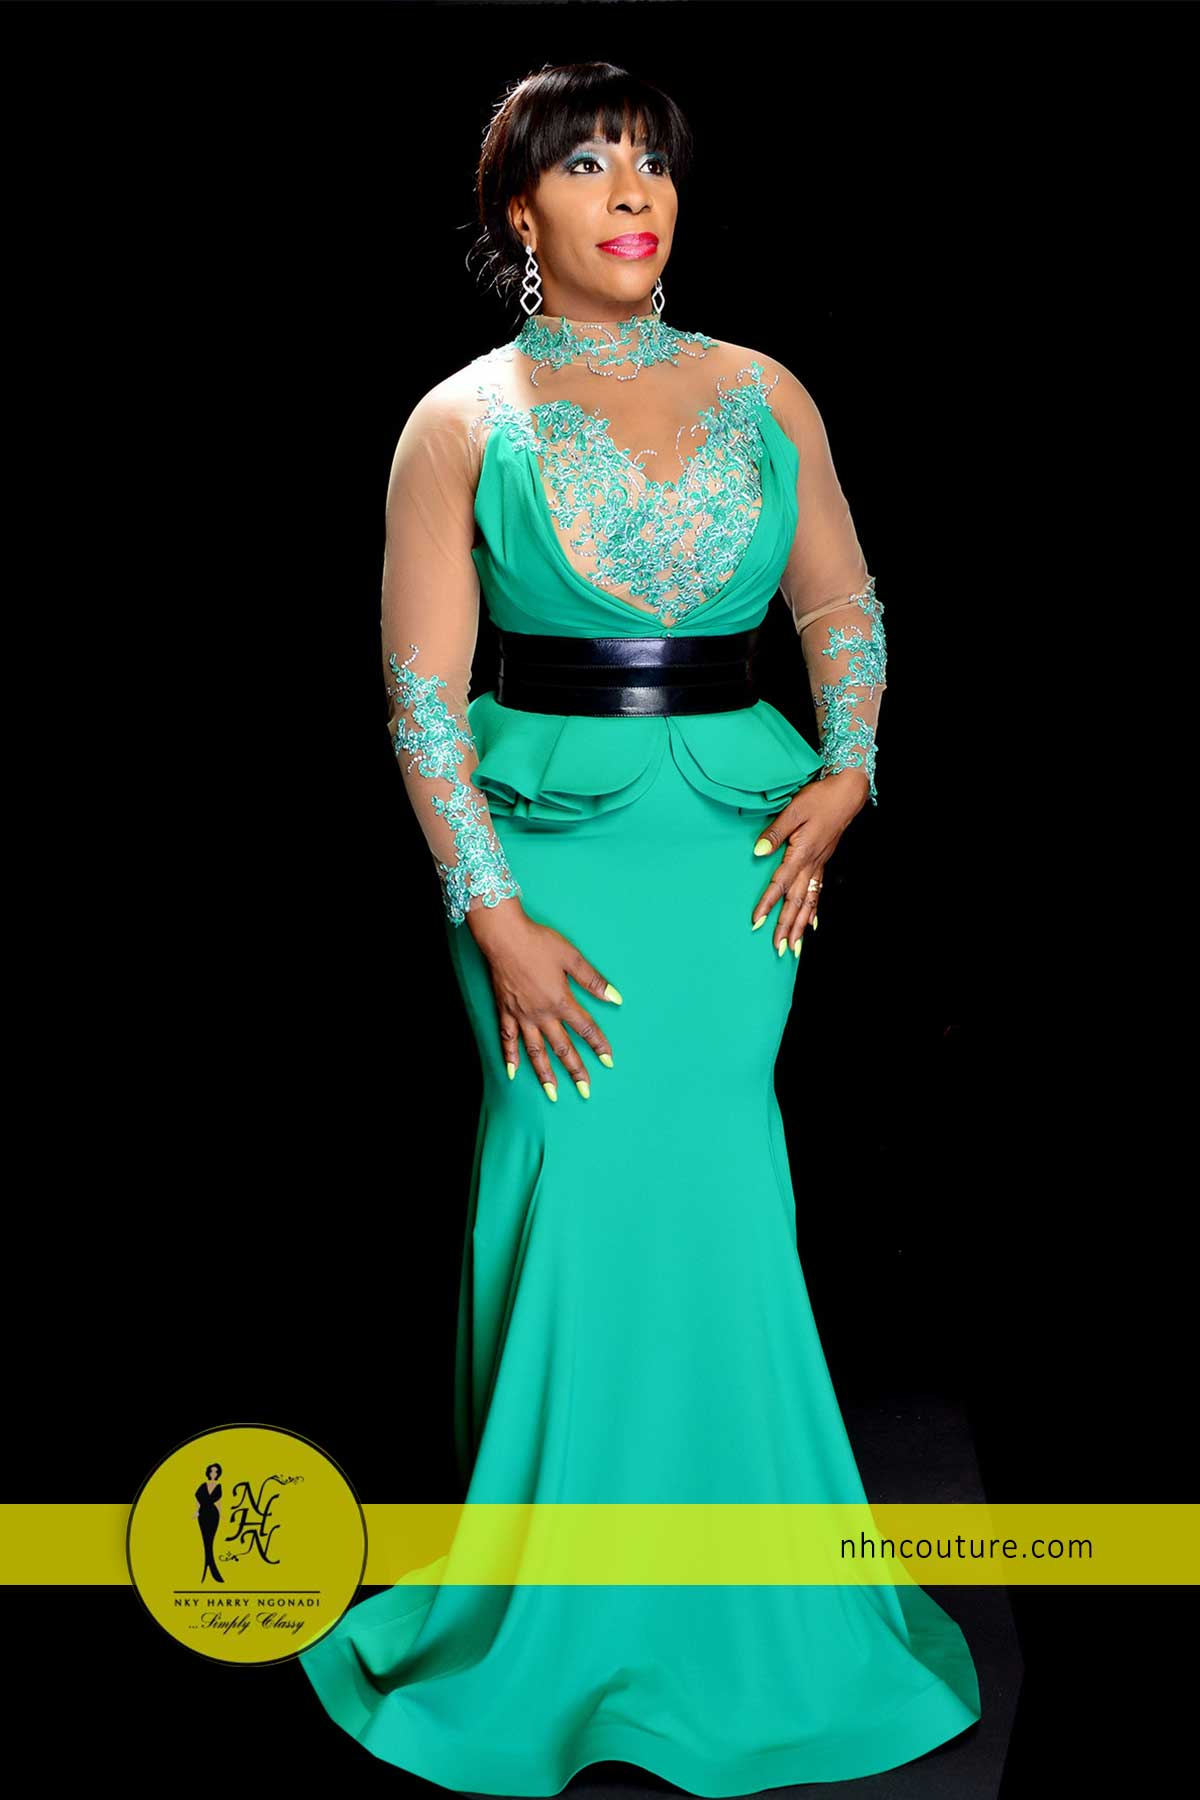 NHN-Couture-in-Fouad-Sarkis-Green-Evening-Gown-3